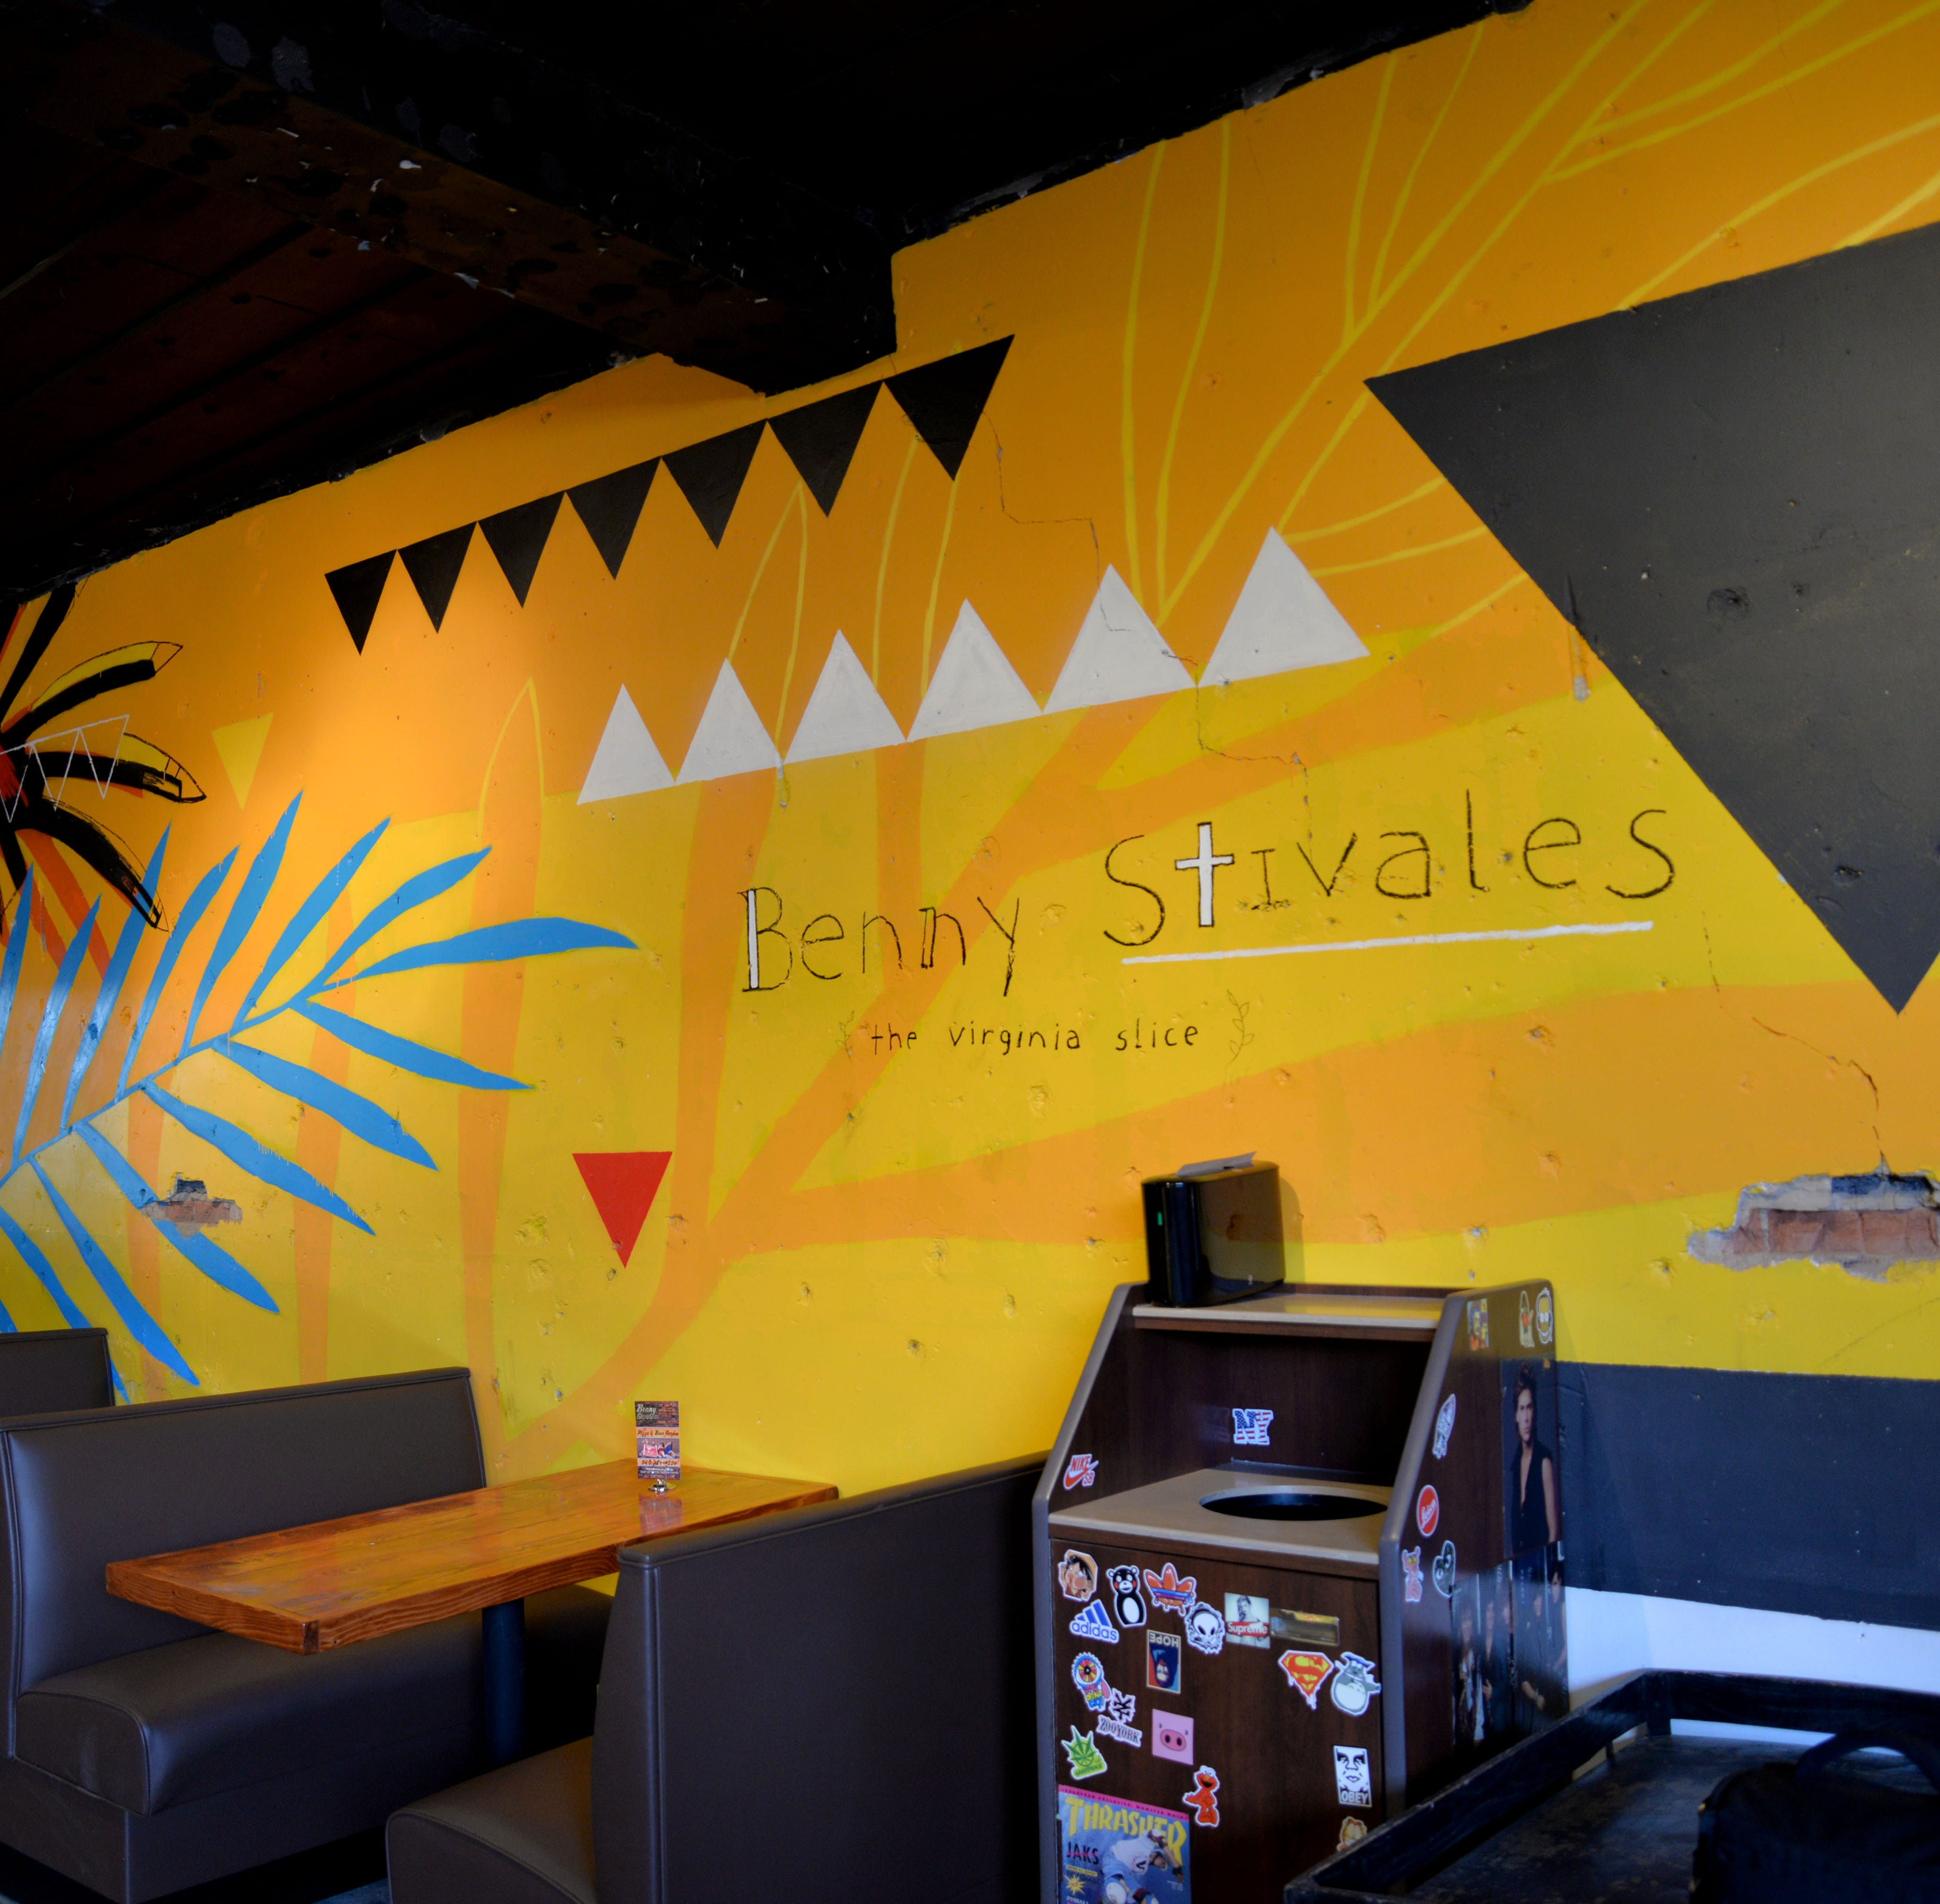 Benny's Pizza to open in Waynesboro on Pi Day; bringing 28-inch pizzas to the area